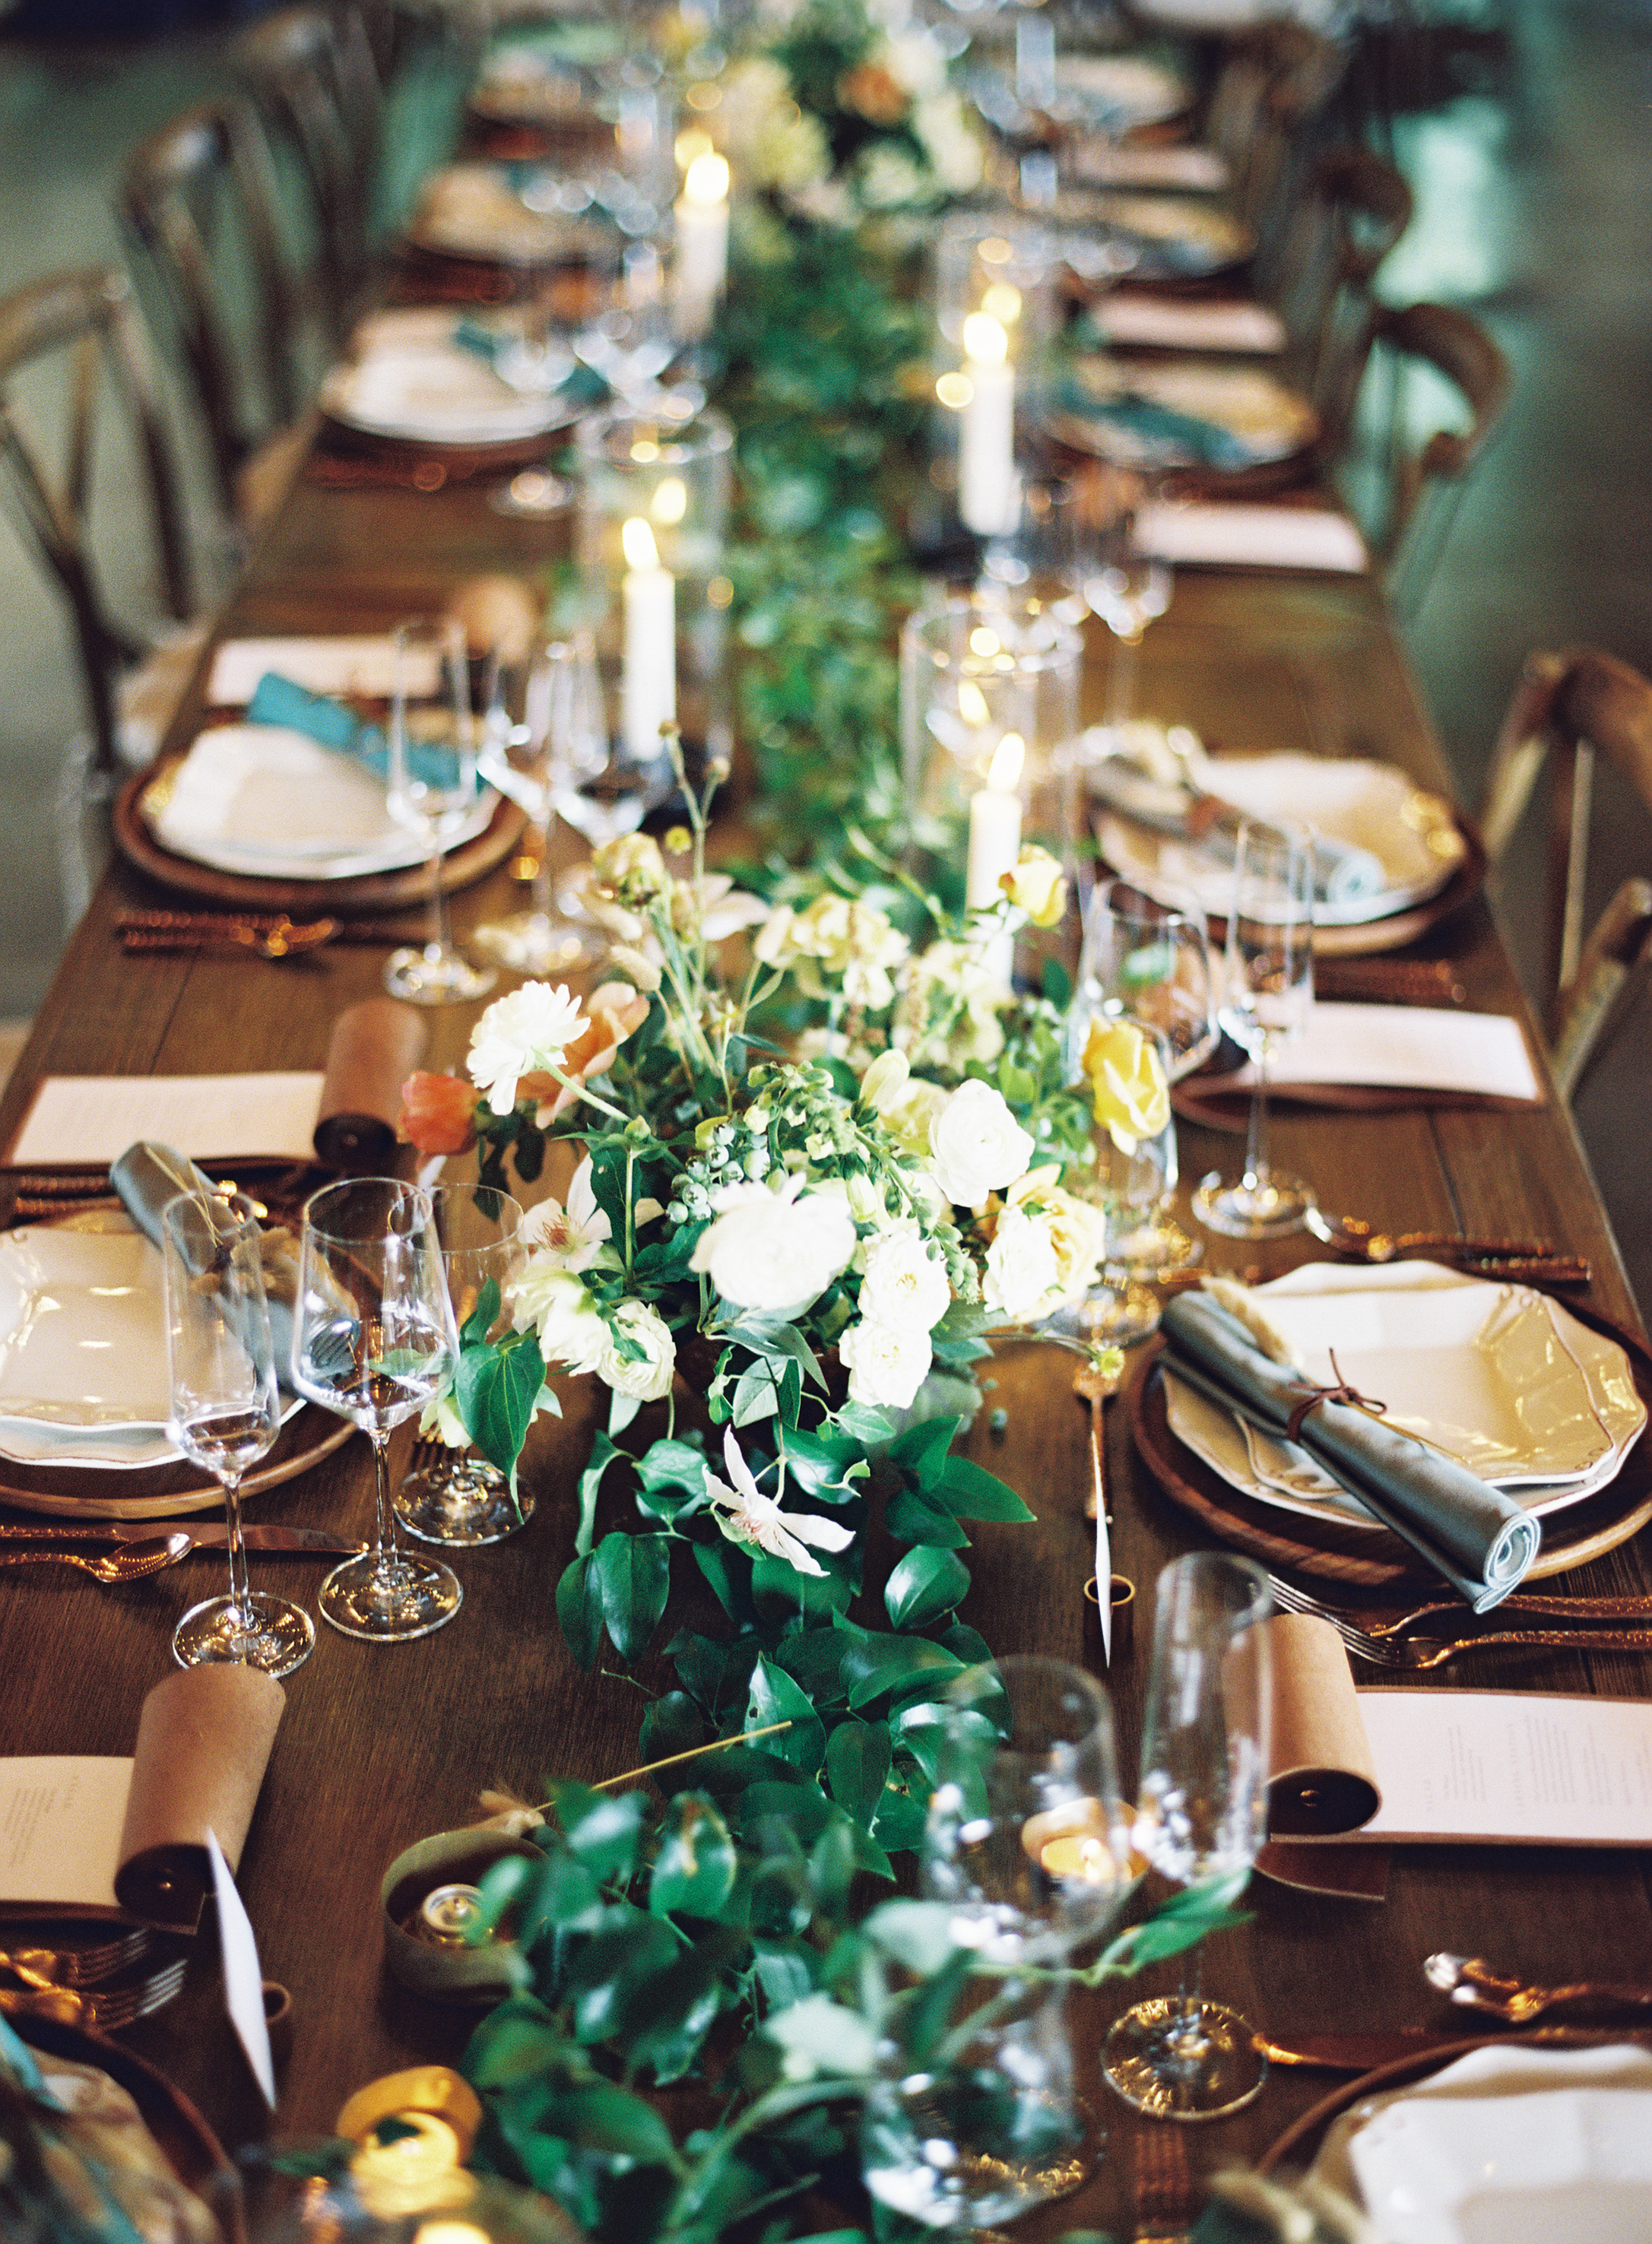 Elegant long table setting with candles and greenery